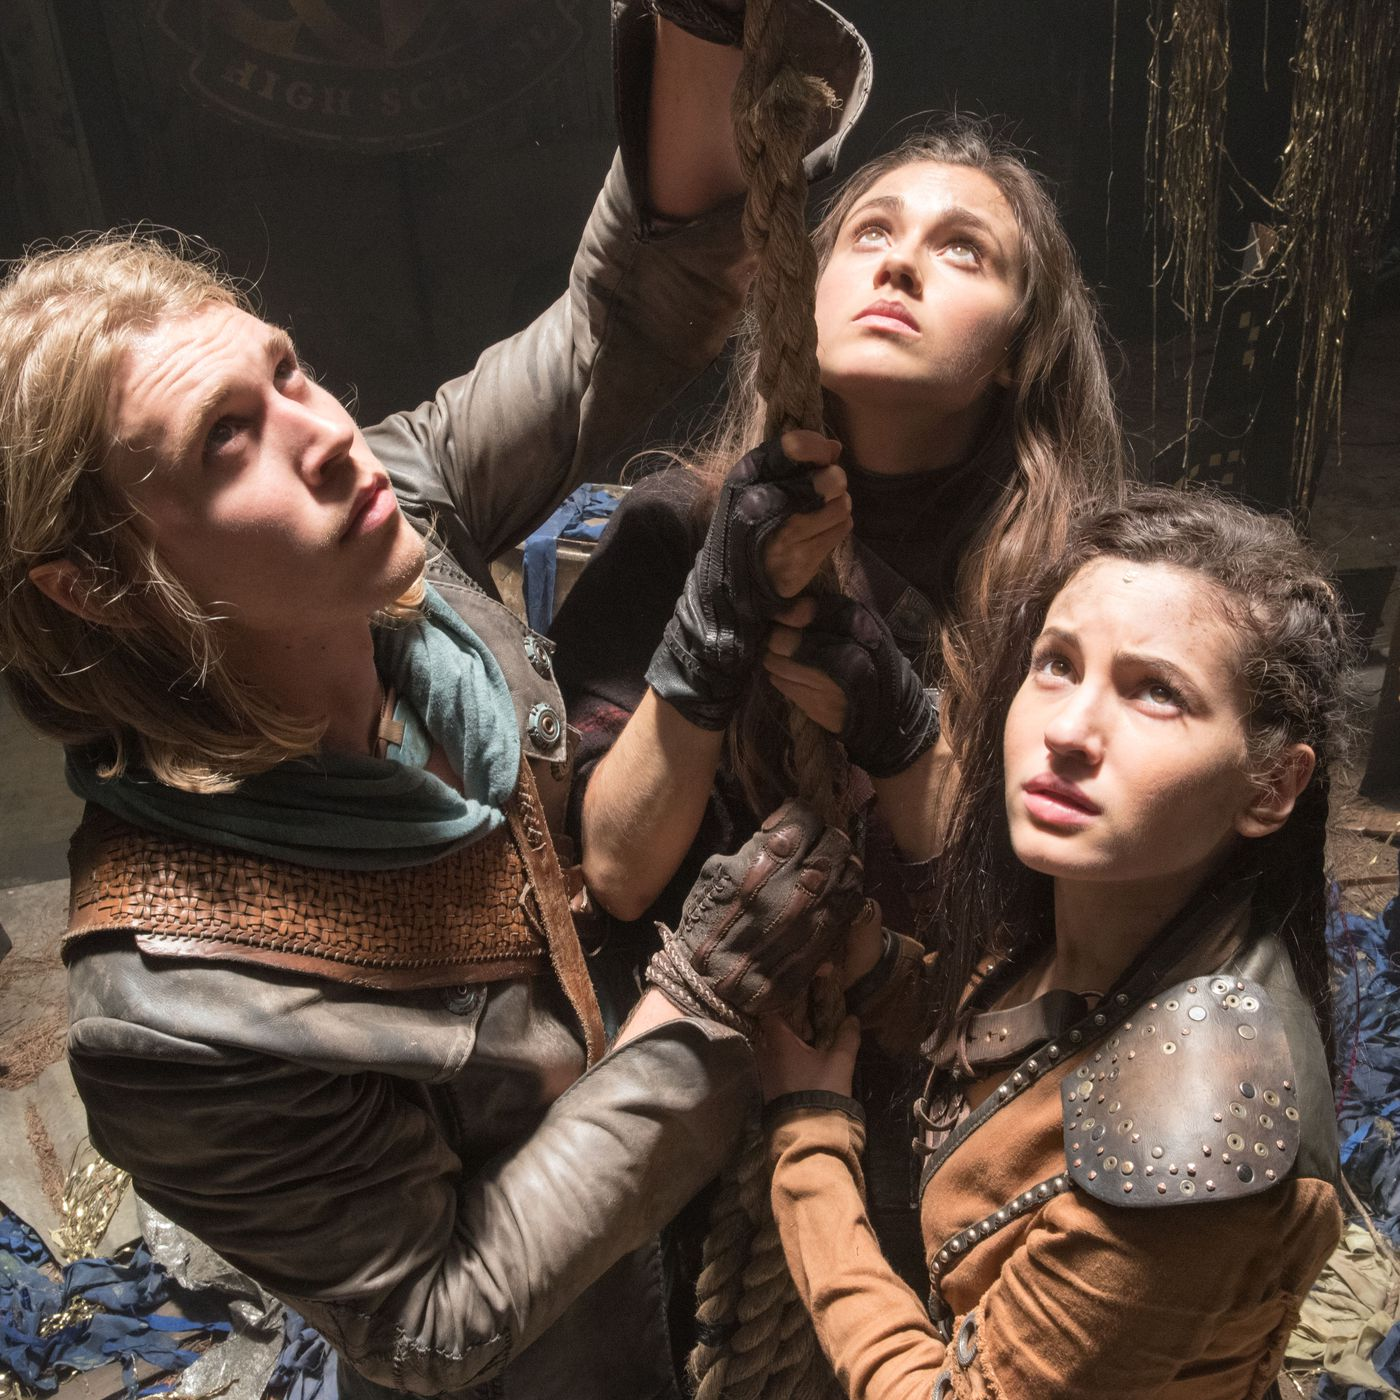 The Shannara Chronicles is Game of Thrones without wrinkles - The Verge